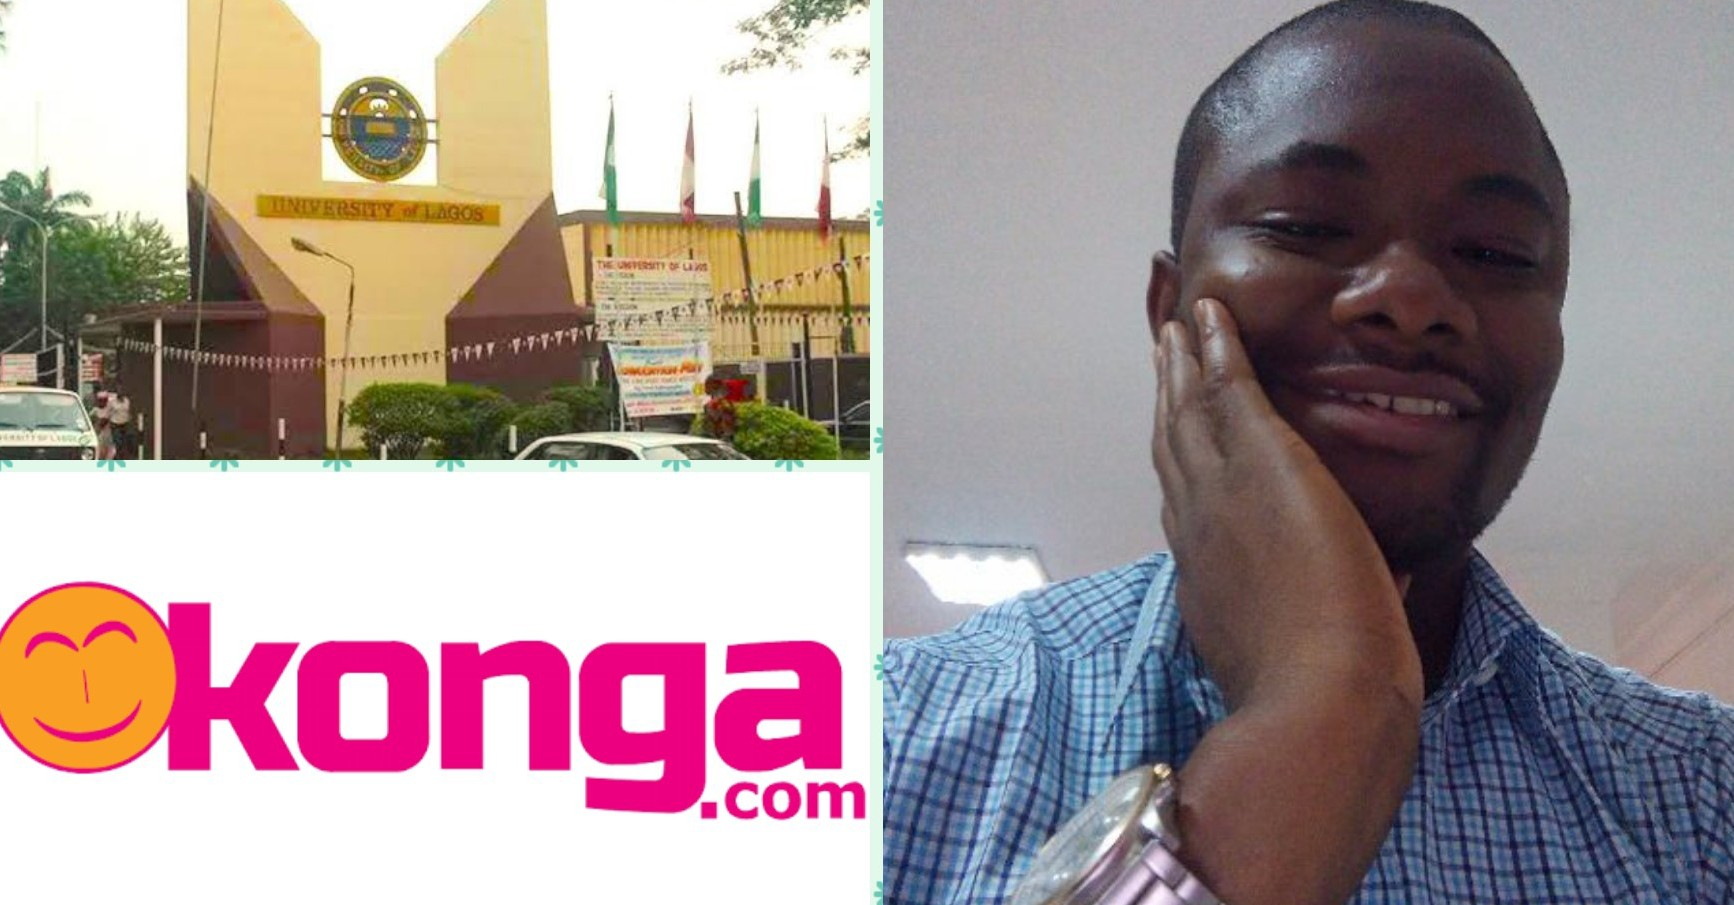 UNILAG postgraduate student charged for allegedly defrauding Konga